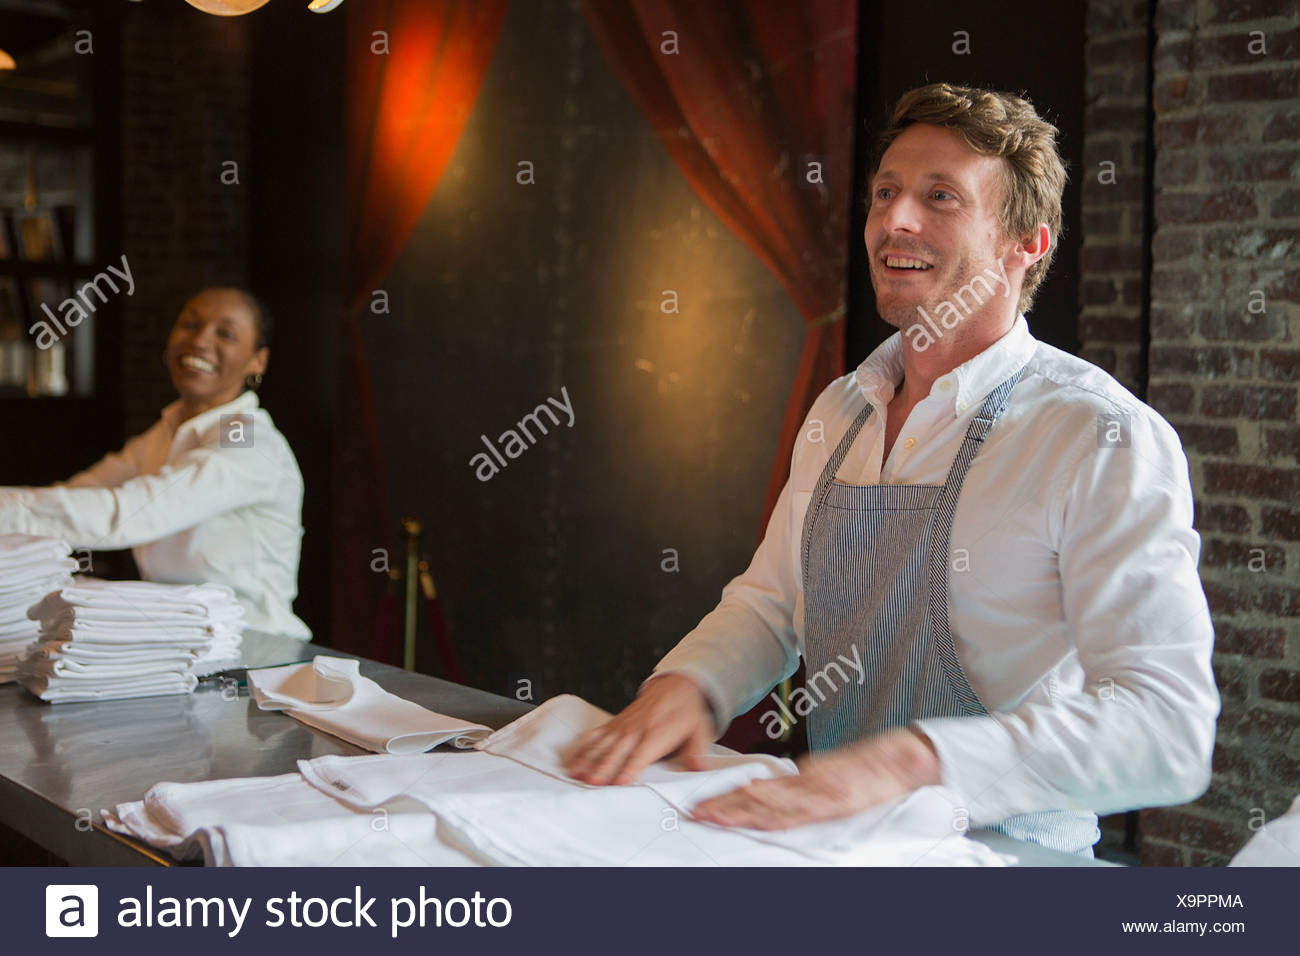 Chef and waitress folding napkins in restaurant - Stock Image